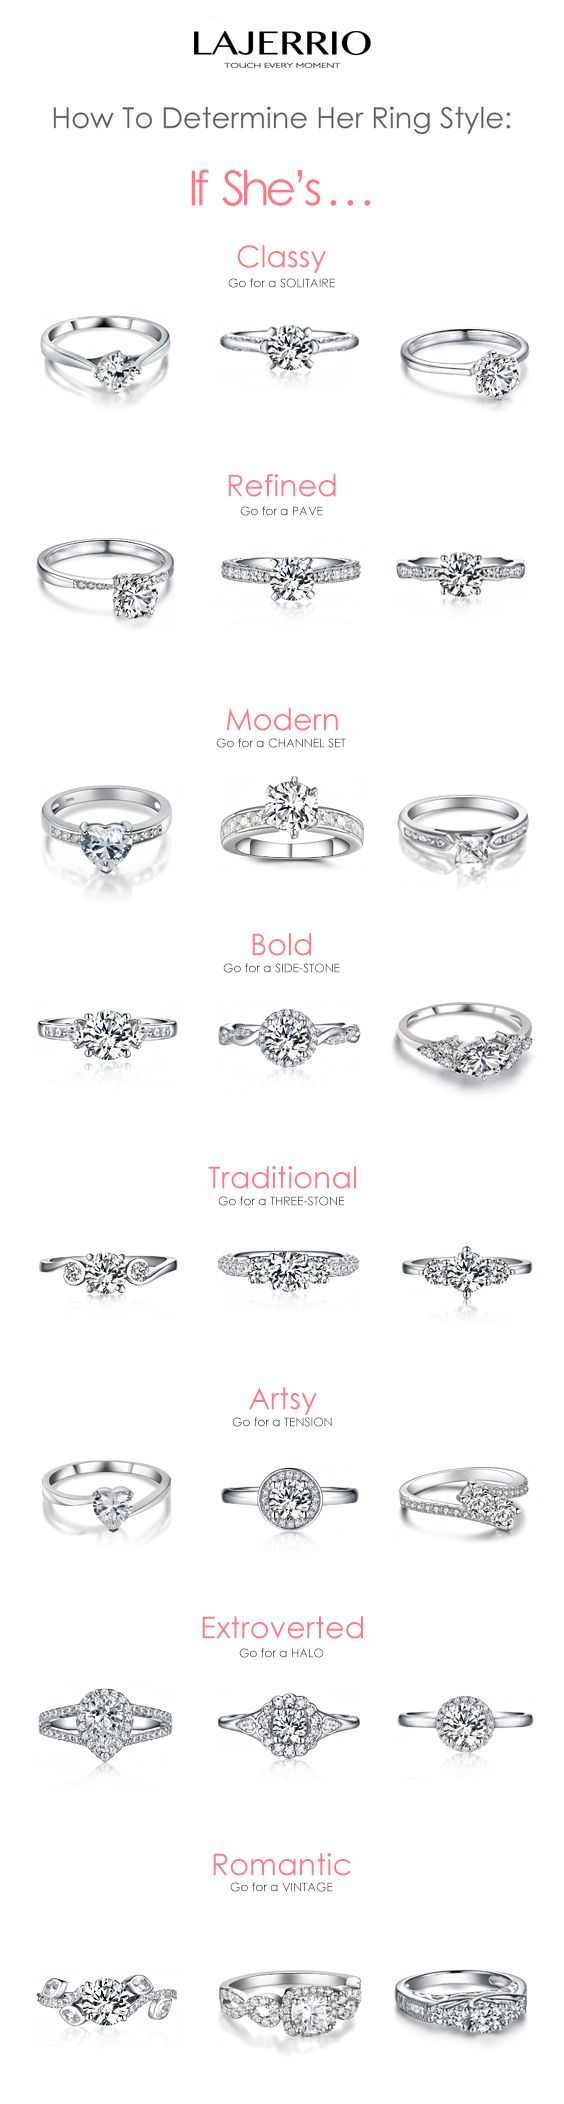 Lajerrio #rings for engagement / wedding / cocktail bridal ring sets